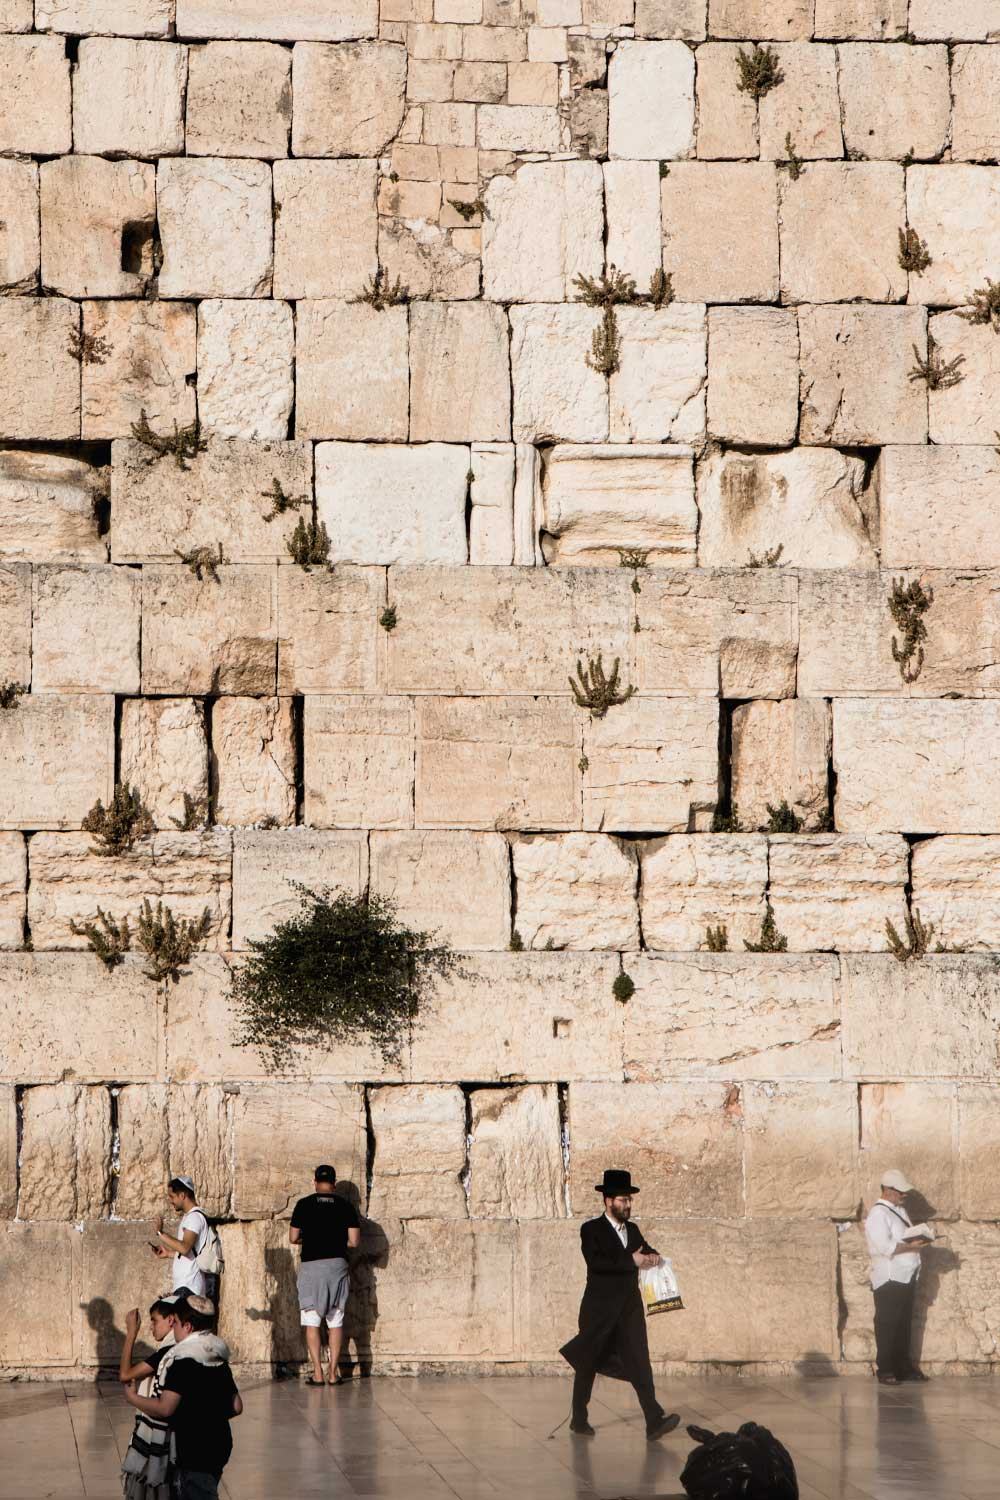 Jews worshipping at the Wailing Wall in Jerusalem